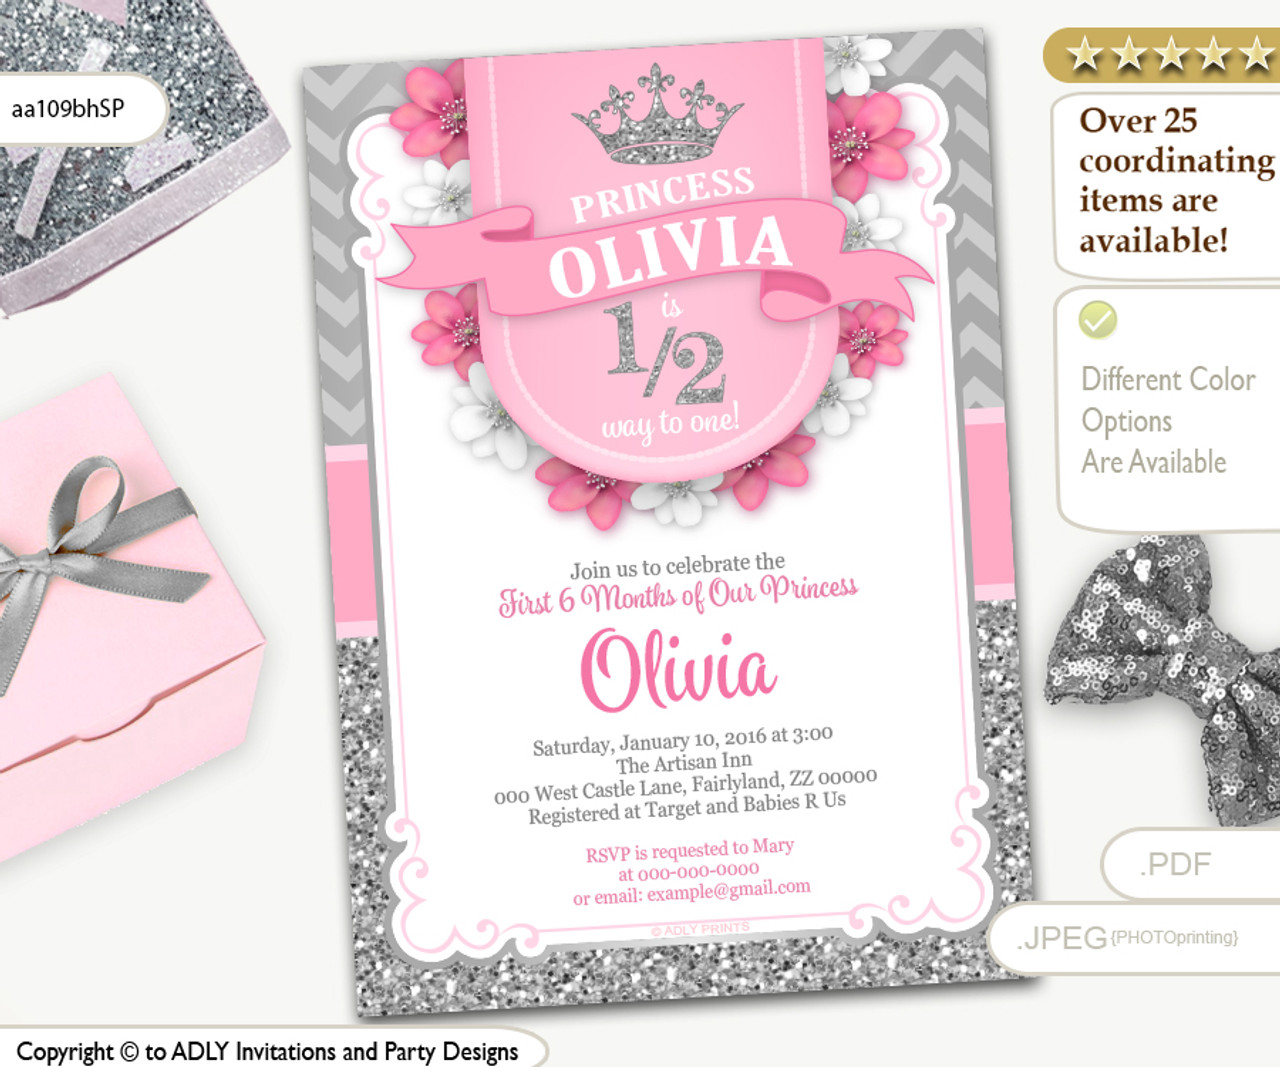 Half Way To ONE 1 2 Birthday Invitation For Little Princess In Pink And Silver Glitter